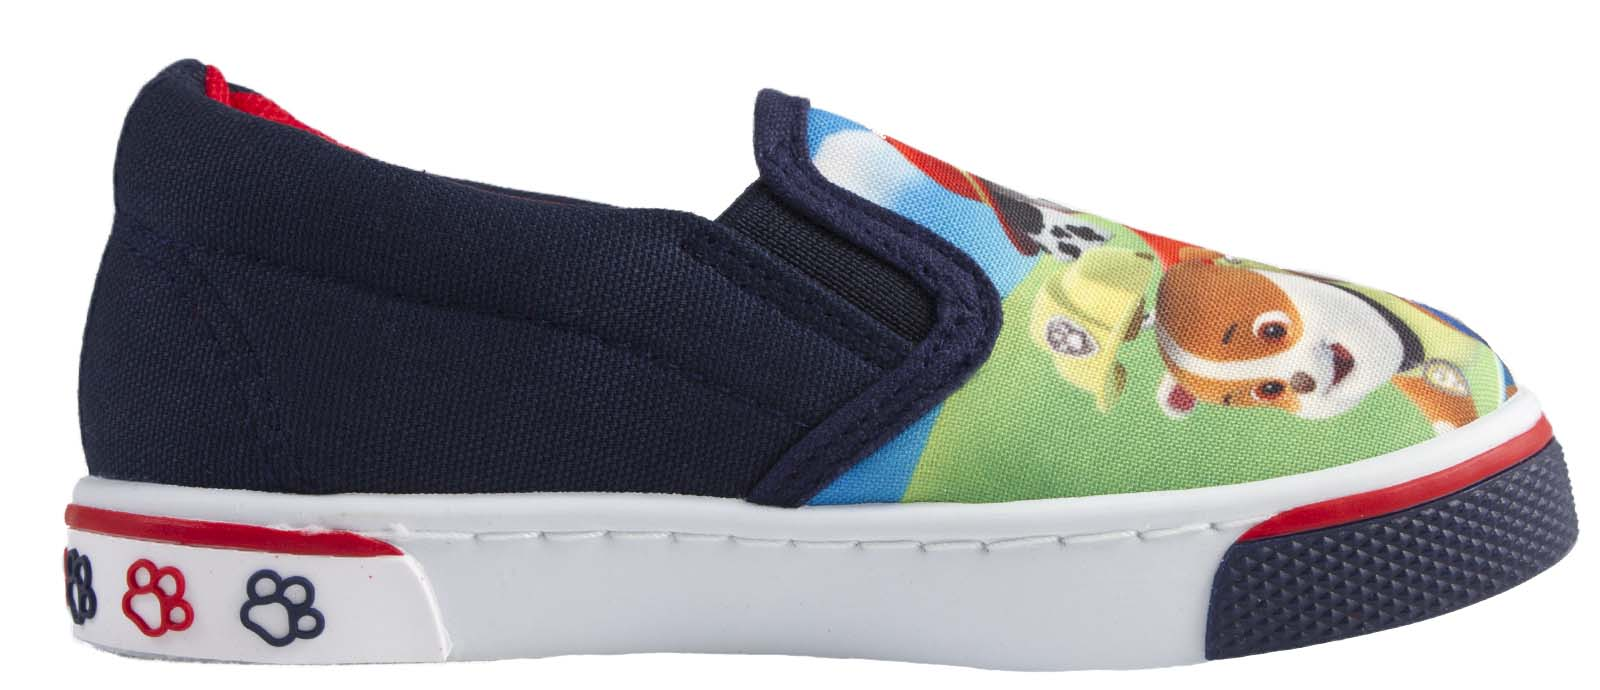 Paw Patrol Touch Fastening Canvas Pumps Chase Marshall Skate Shoes Kids Size